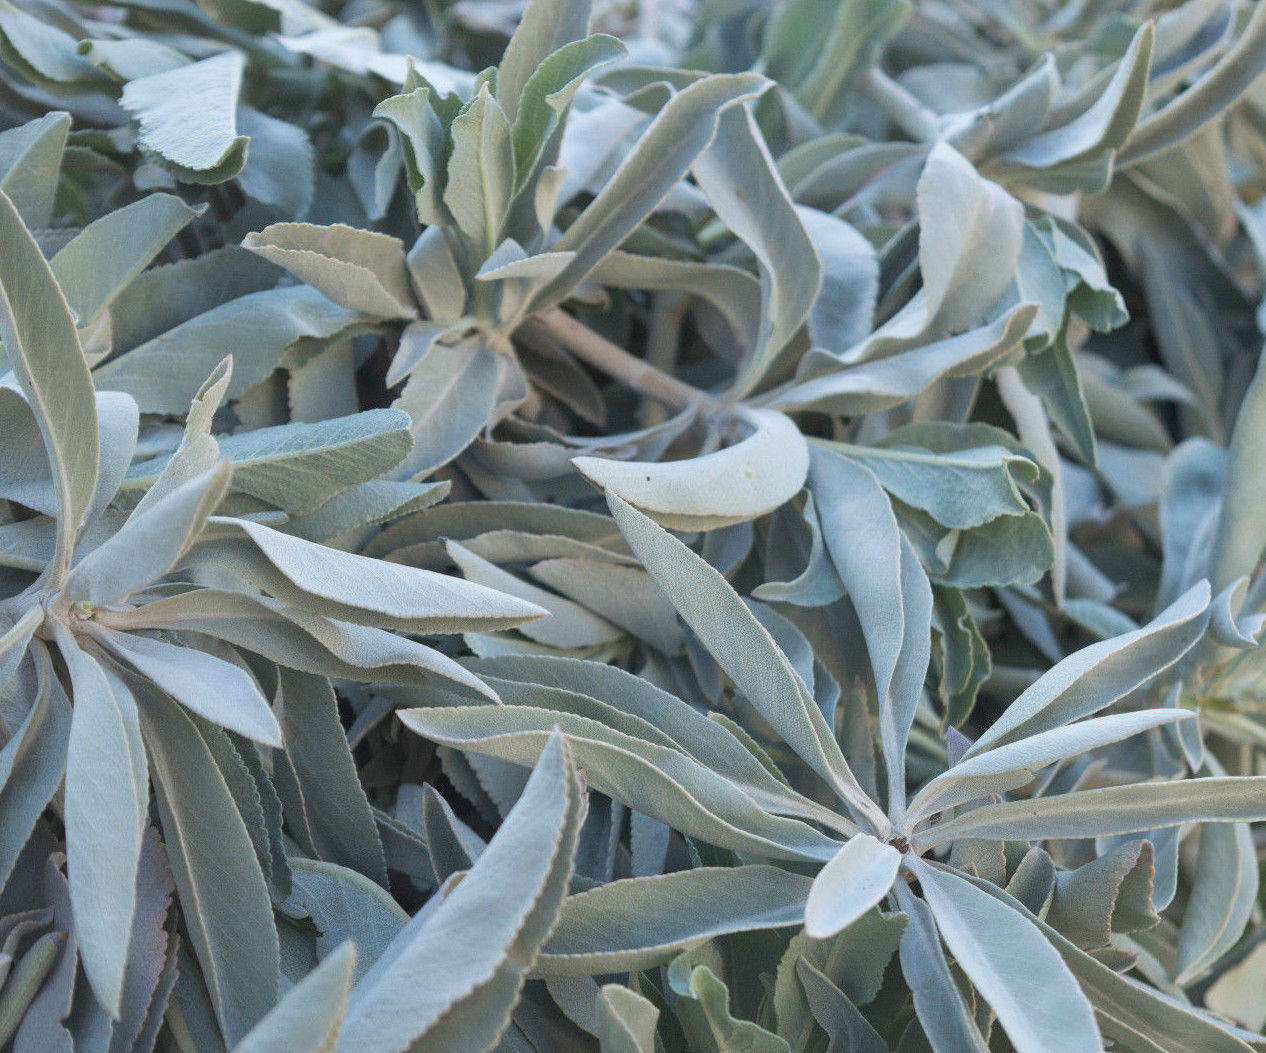 5 Pounds Dried California White Sage Smudge Bulk Cluster Herb